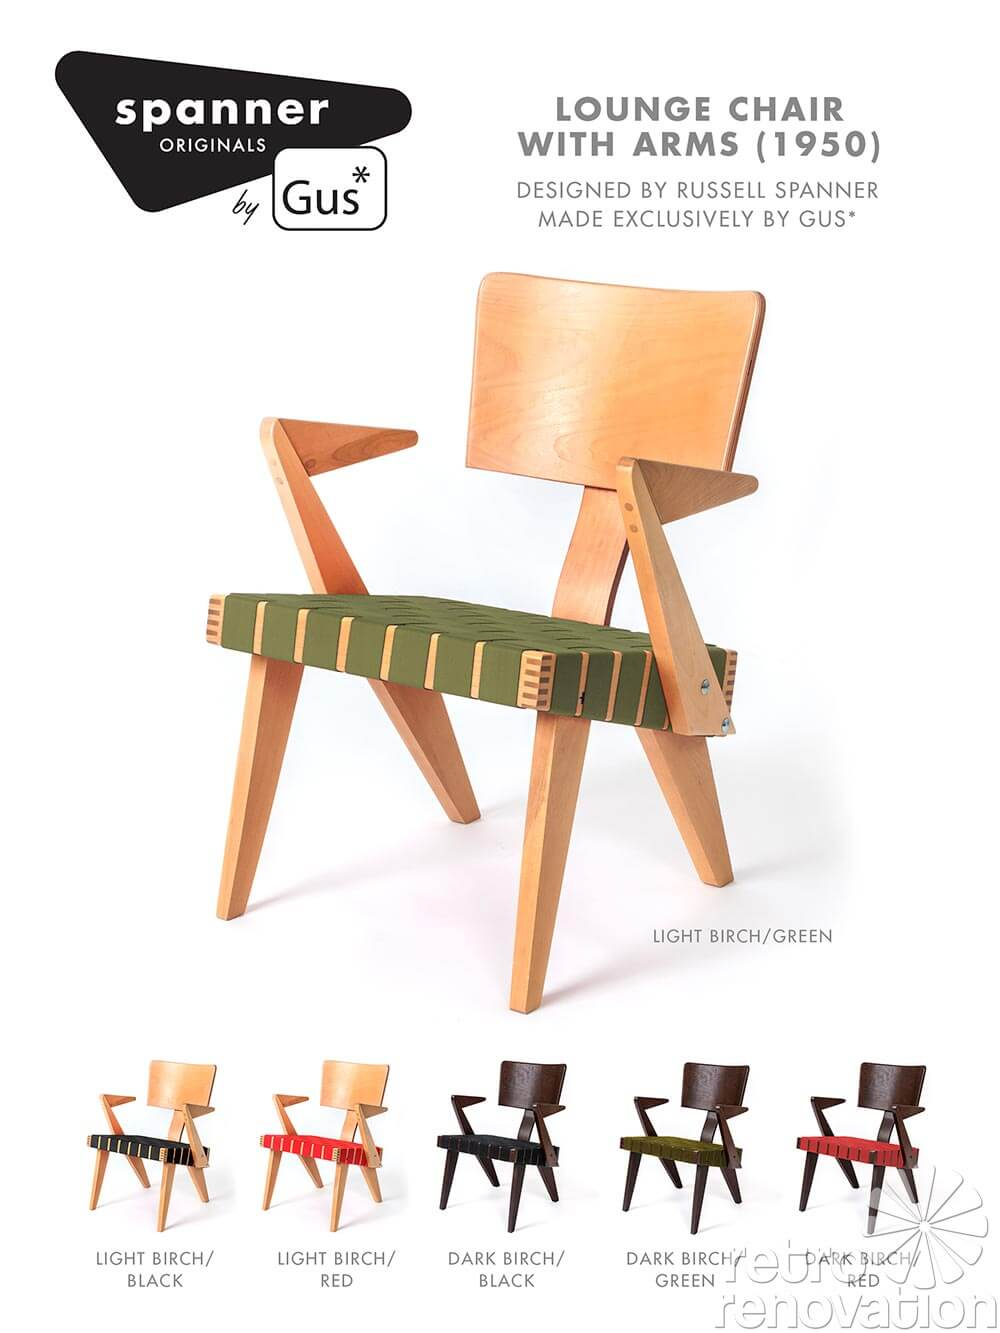 Groovy Gus Modern Revives 1950 Russell Spanner Designed Chair Creativecarmelina Interior Chair Design Creativecarmelinacom